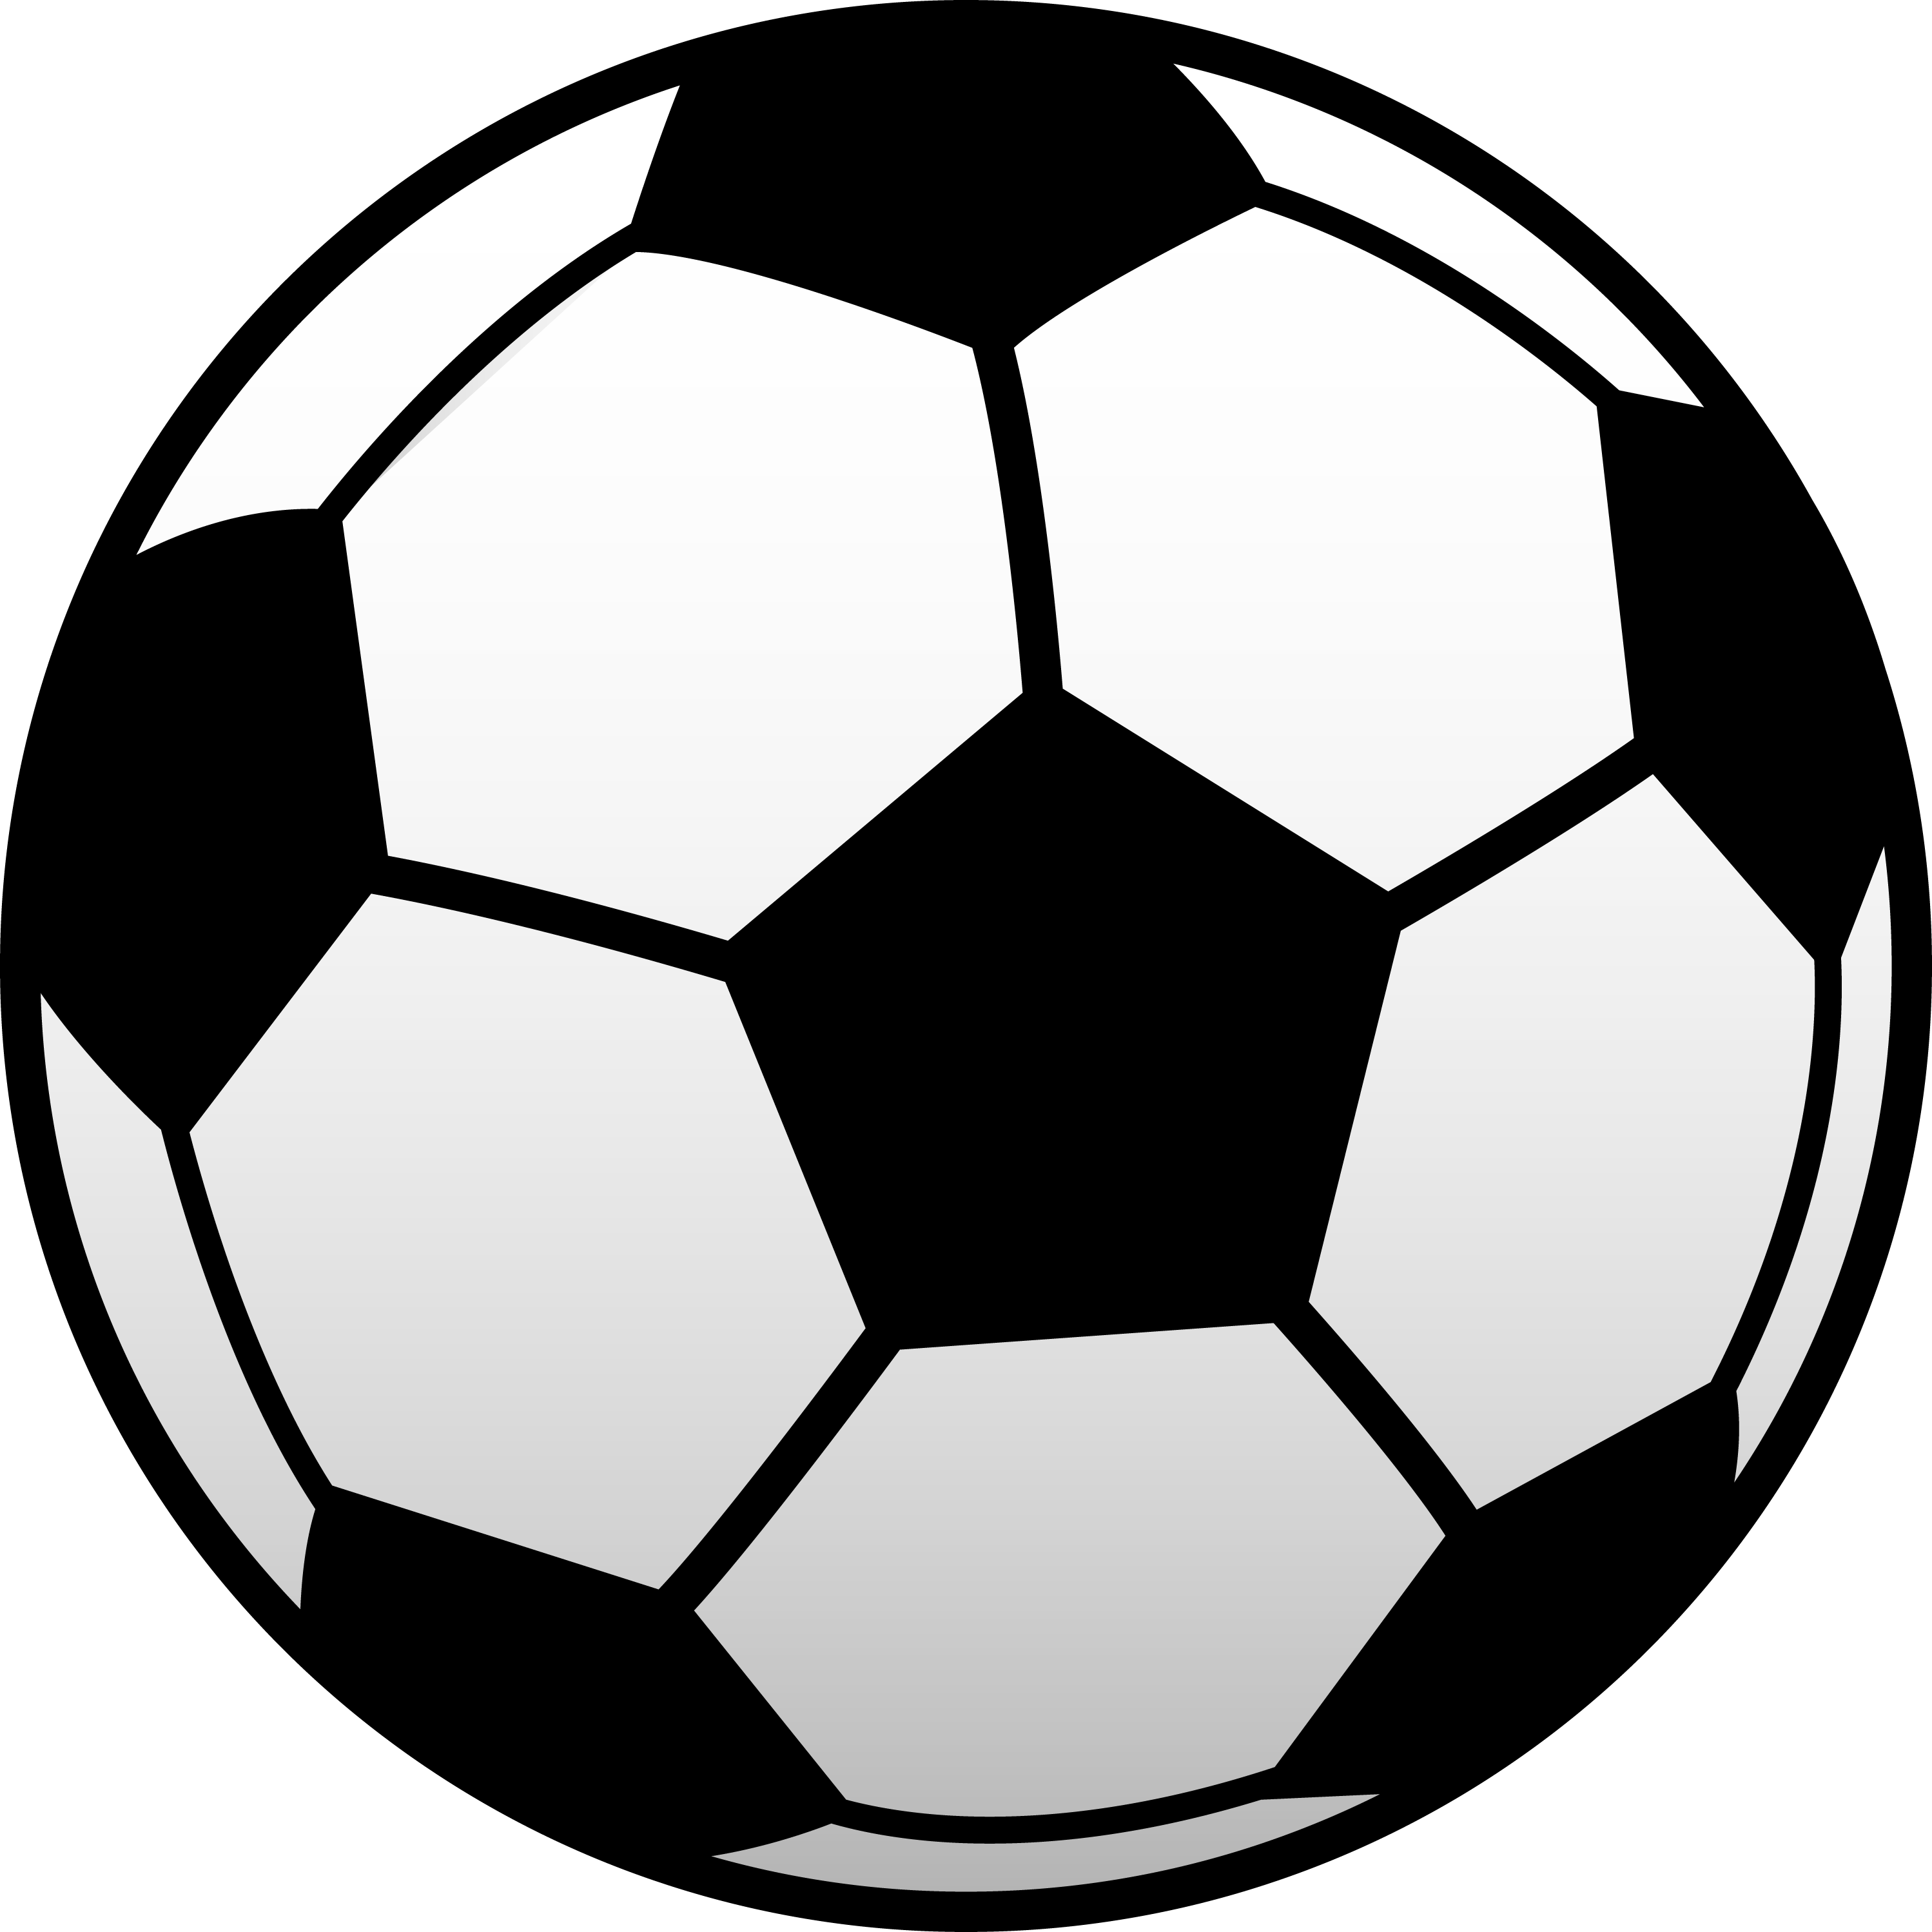 Download soccer ball clip art high definition free images.